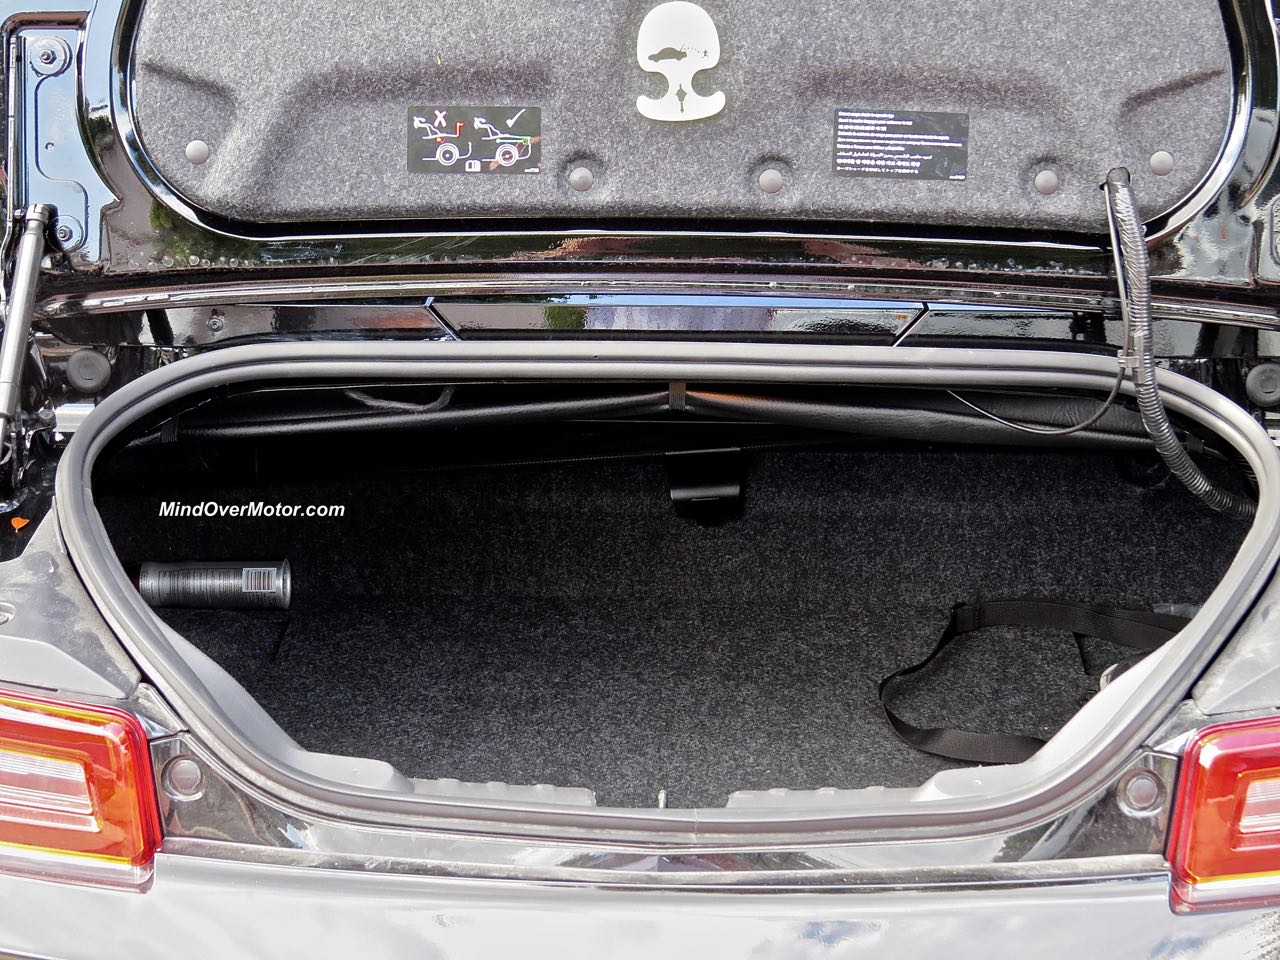 2015 Chevrolet Camaro Convertible Trunk